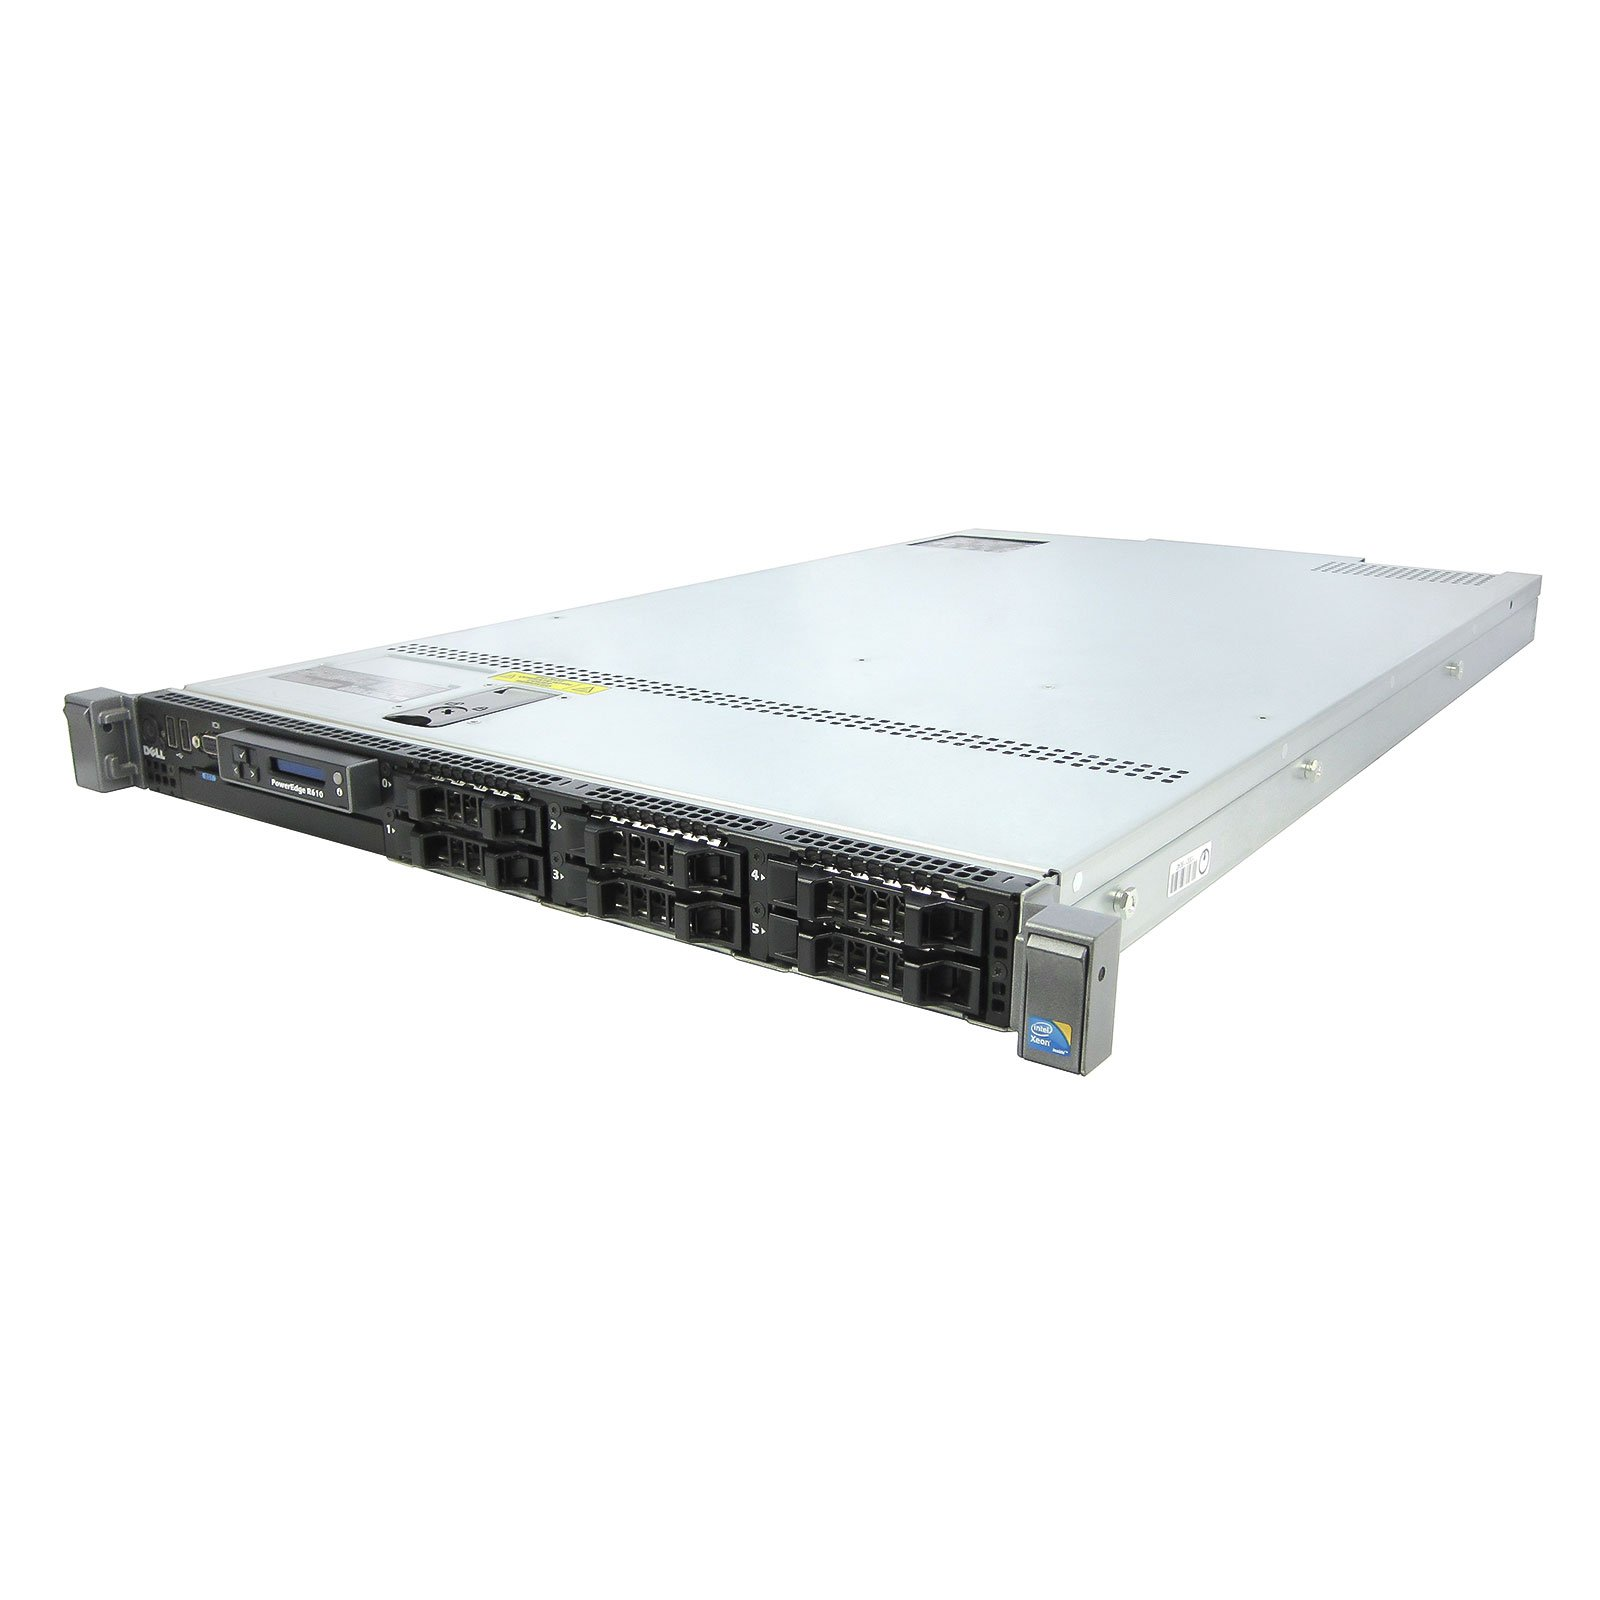 High-End Premium DELL PE R610 Server 2x 3.47Ghz X5690 6C 192G 2x 600GB SSD 4x1TB (Certified Refurbished)